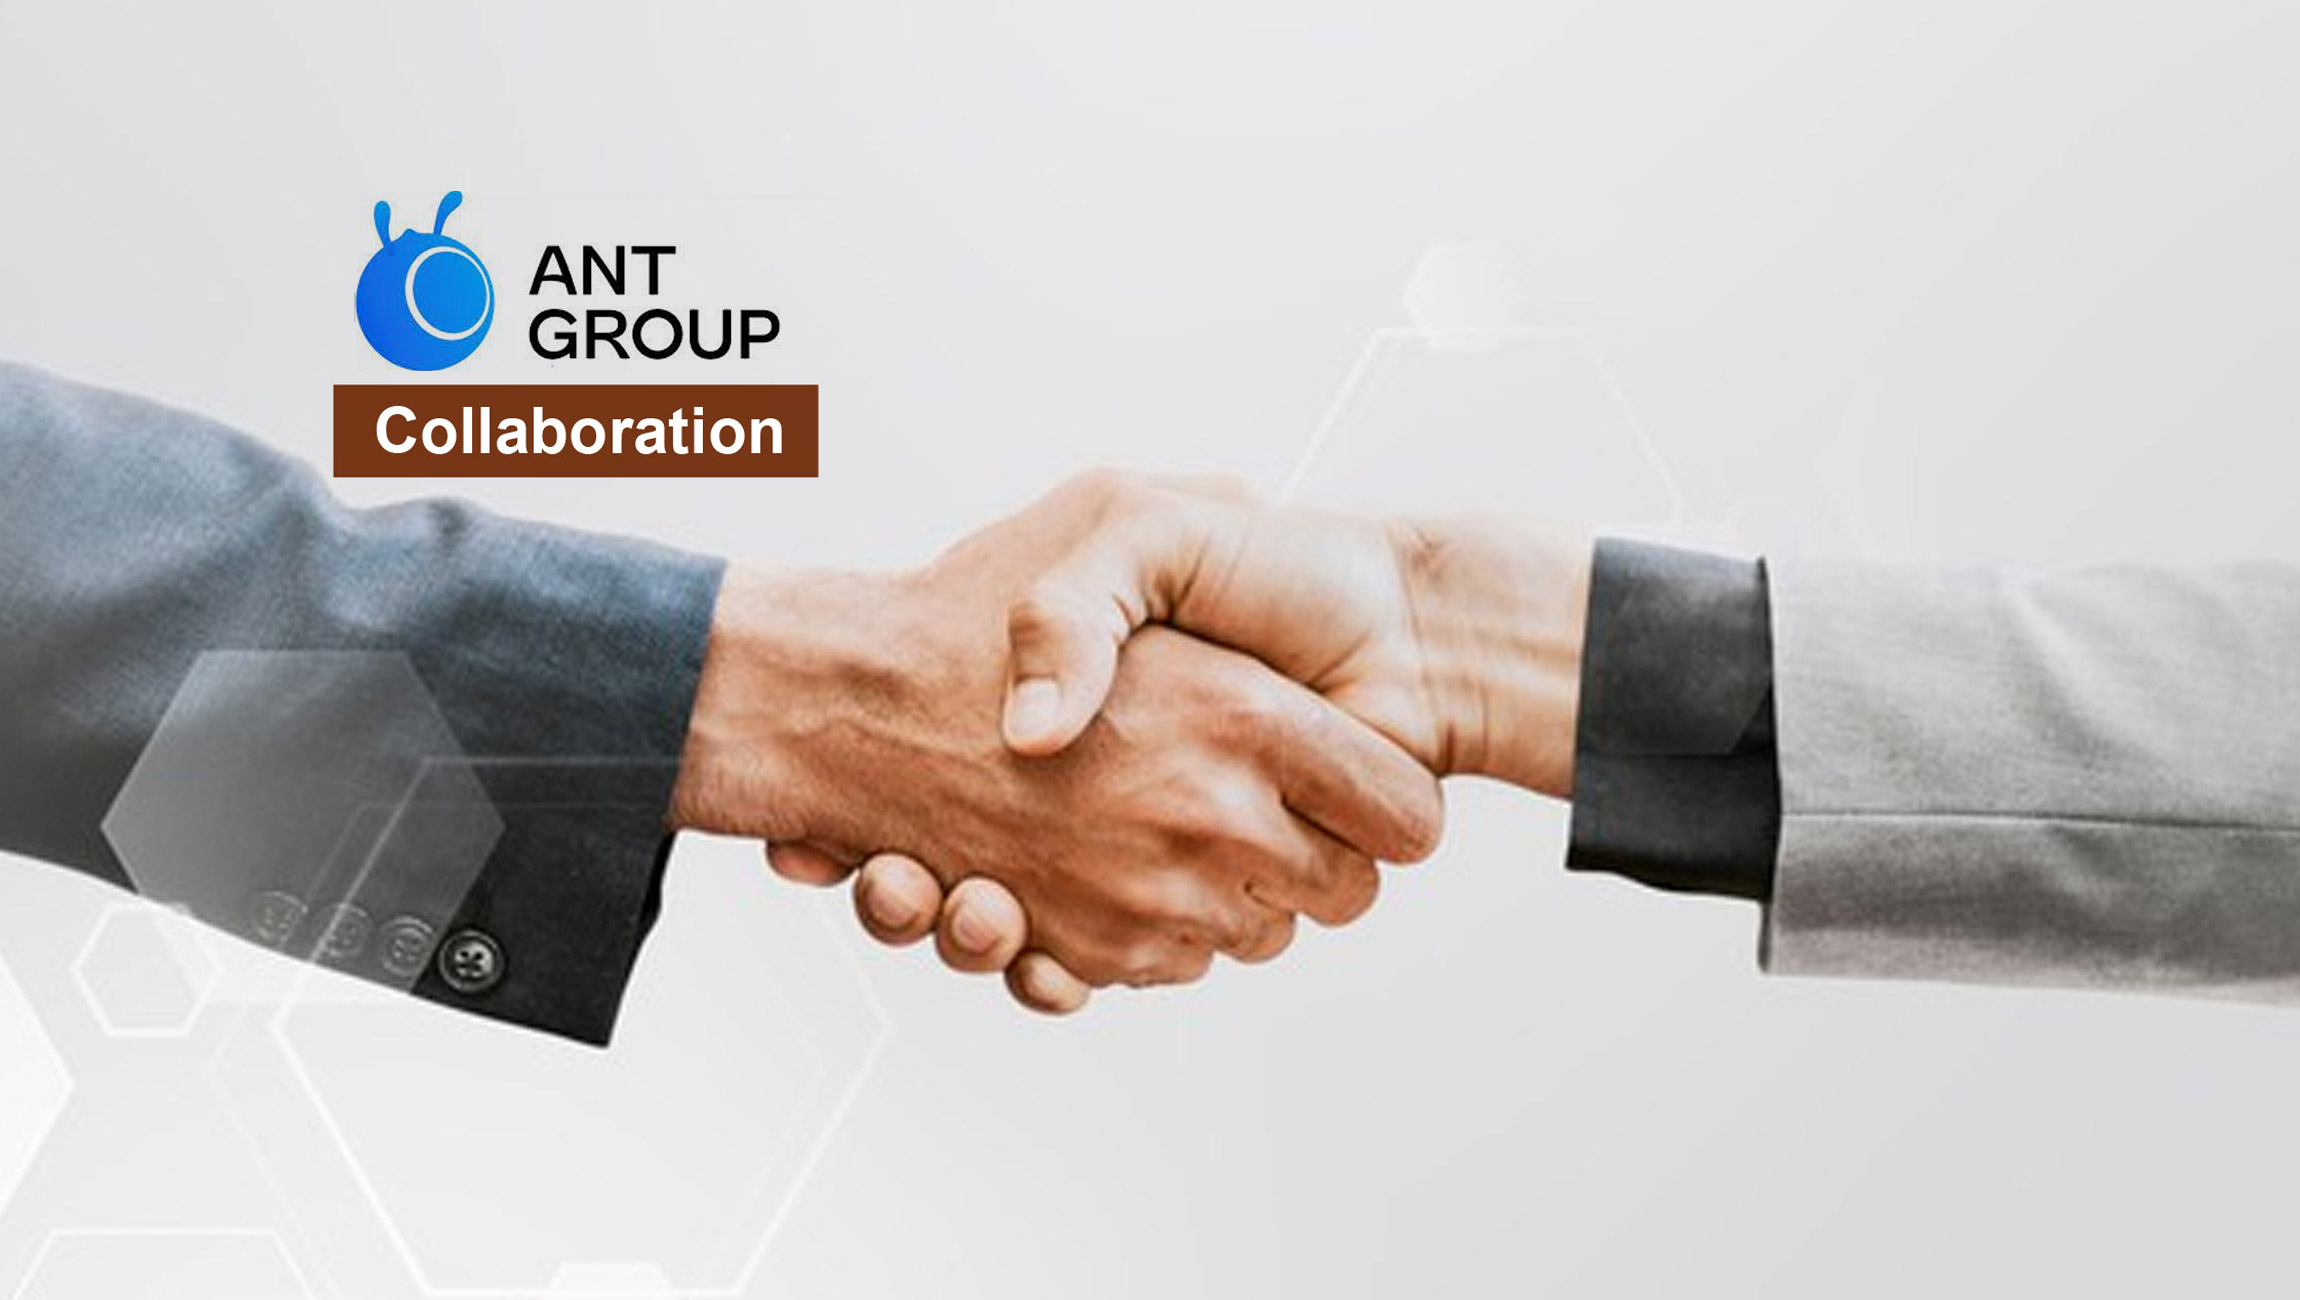 AntChain-Launches-Developer-Support-Program-to-Foster-Global-Collaboration-on-Blockchain-and-Other-Innovations